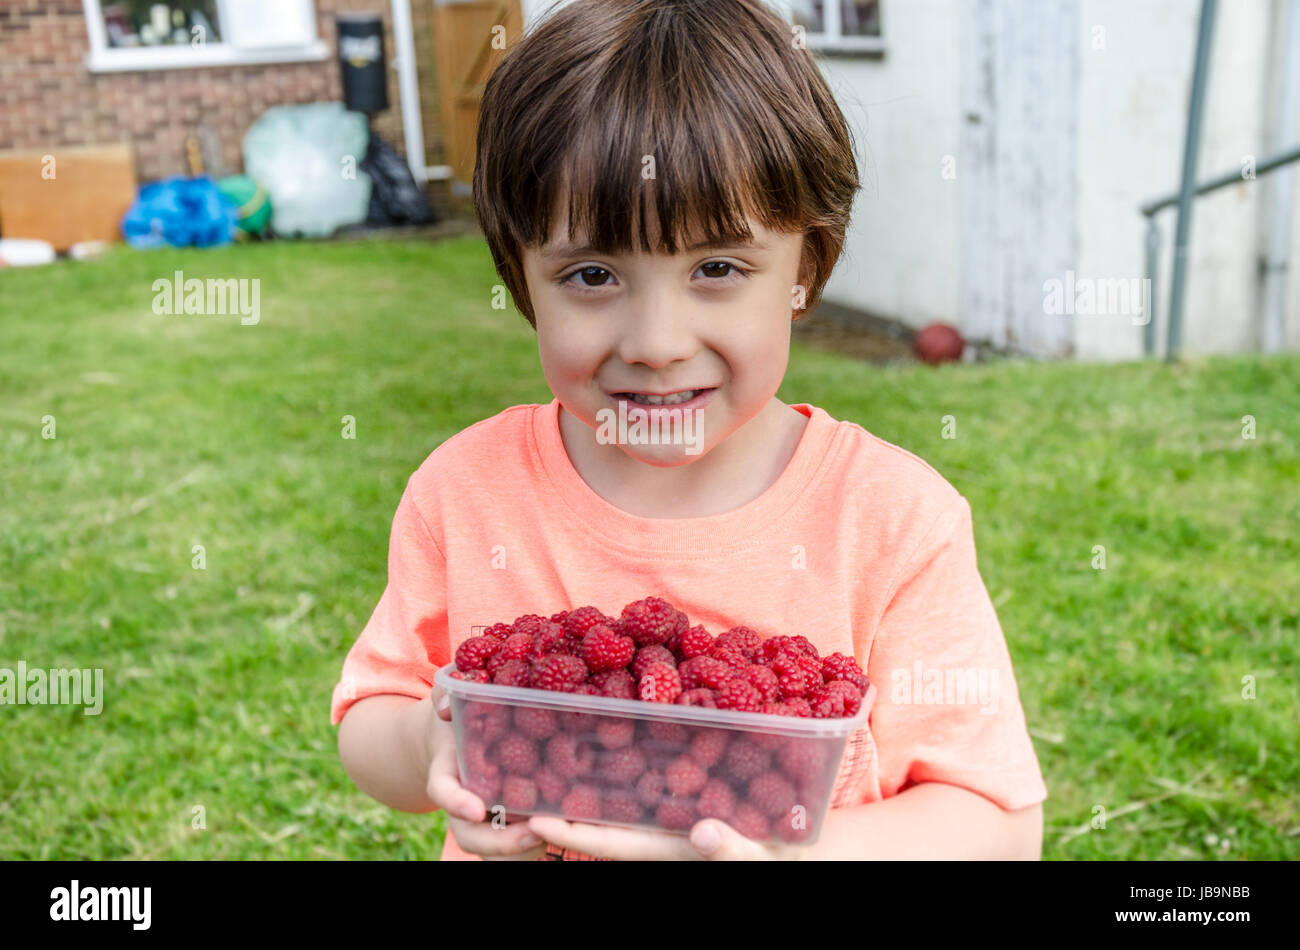 A young boy holds a plastic tub of raspberries whcih he has picked at home in his back garden. - Stock Image